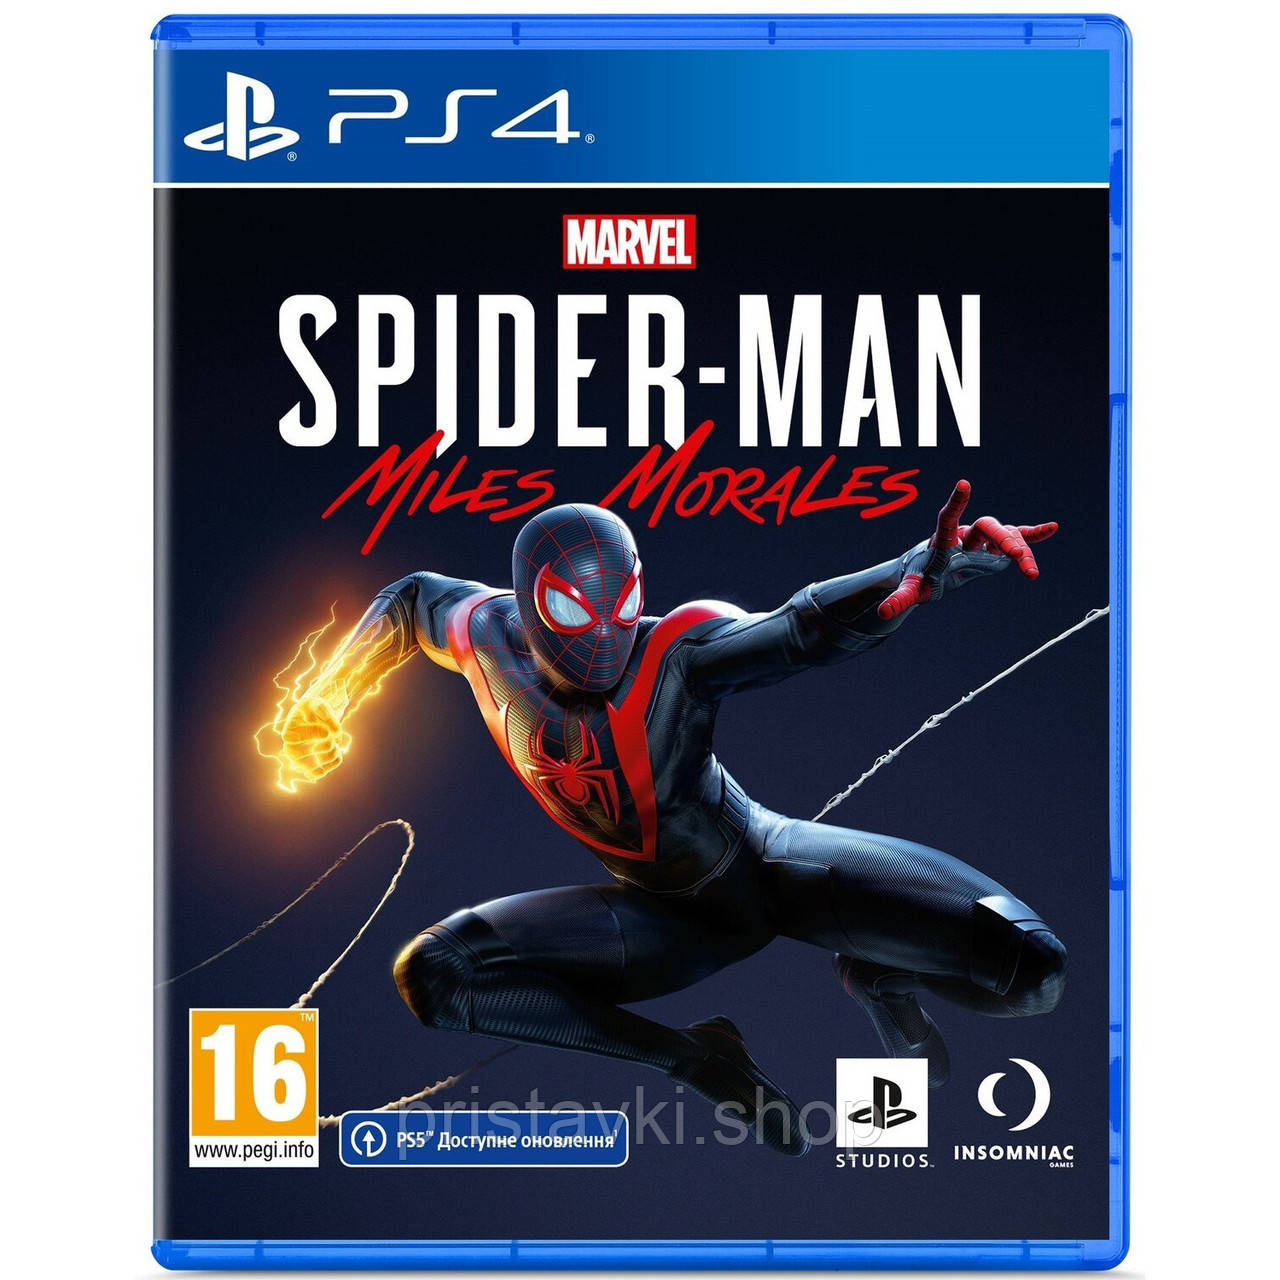 Spider-Man: Miles Morales PS4